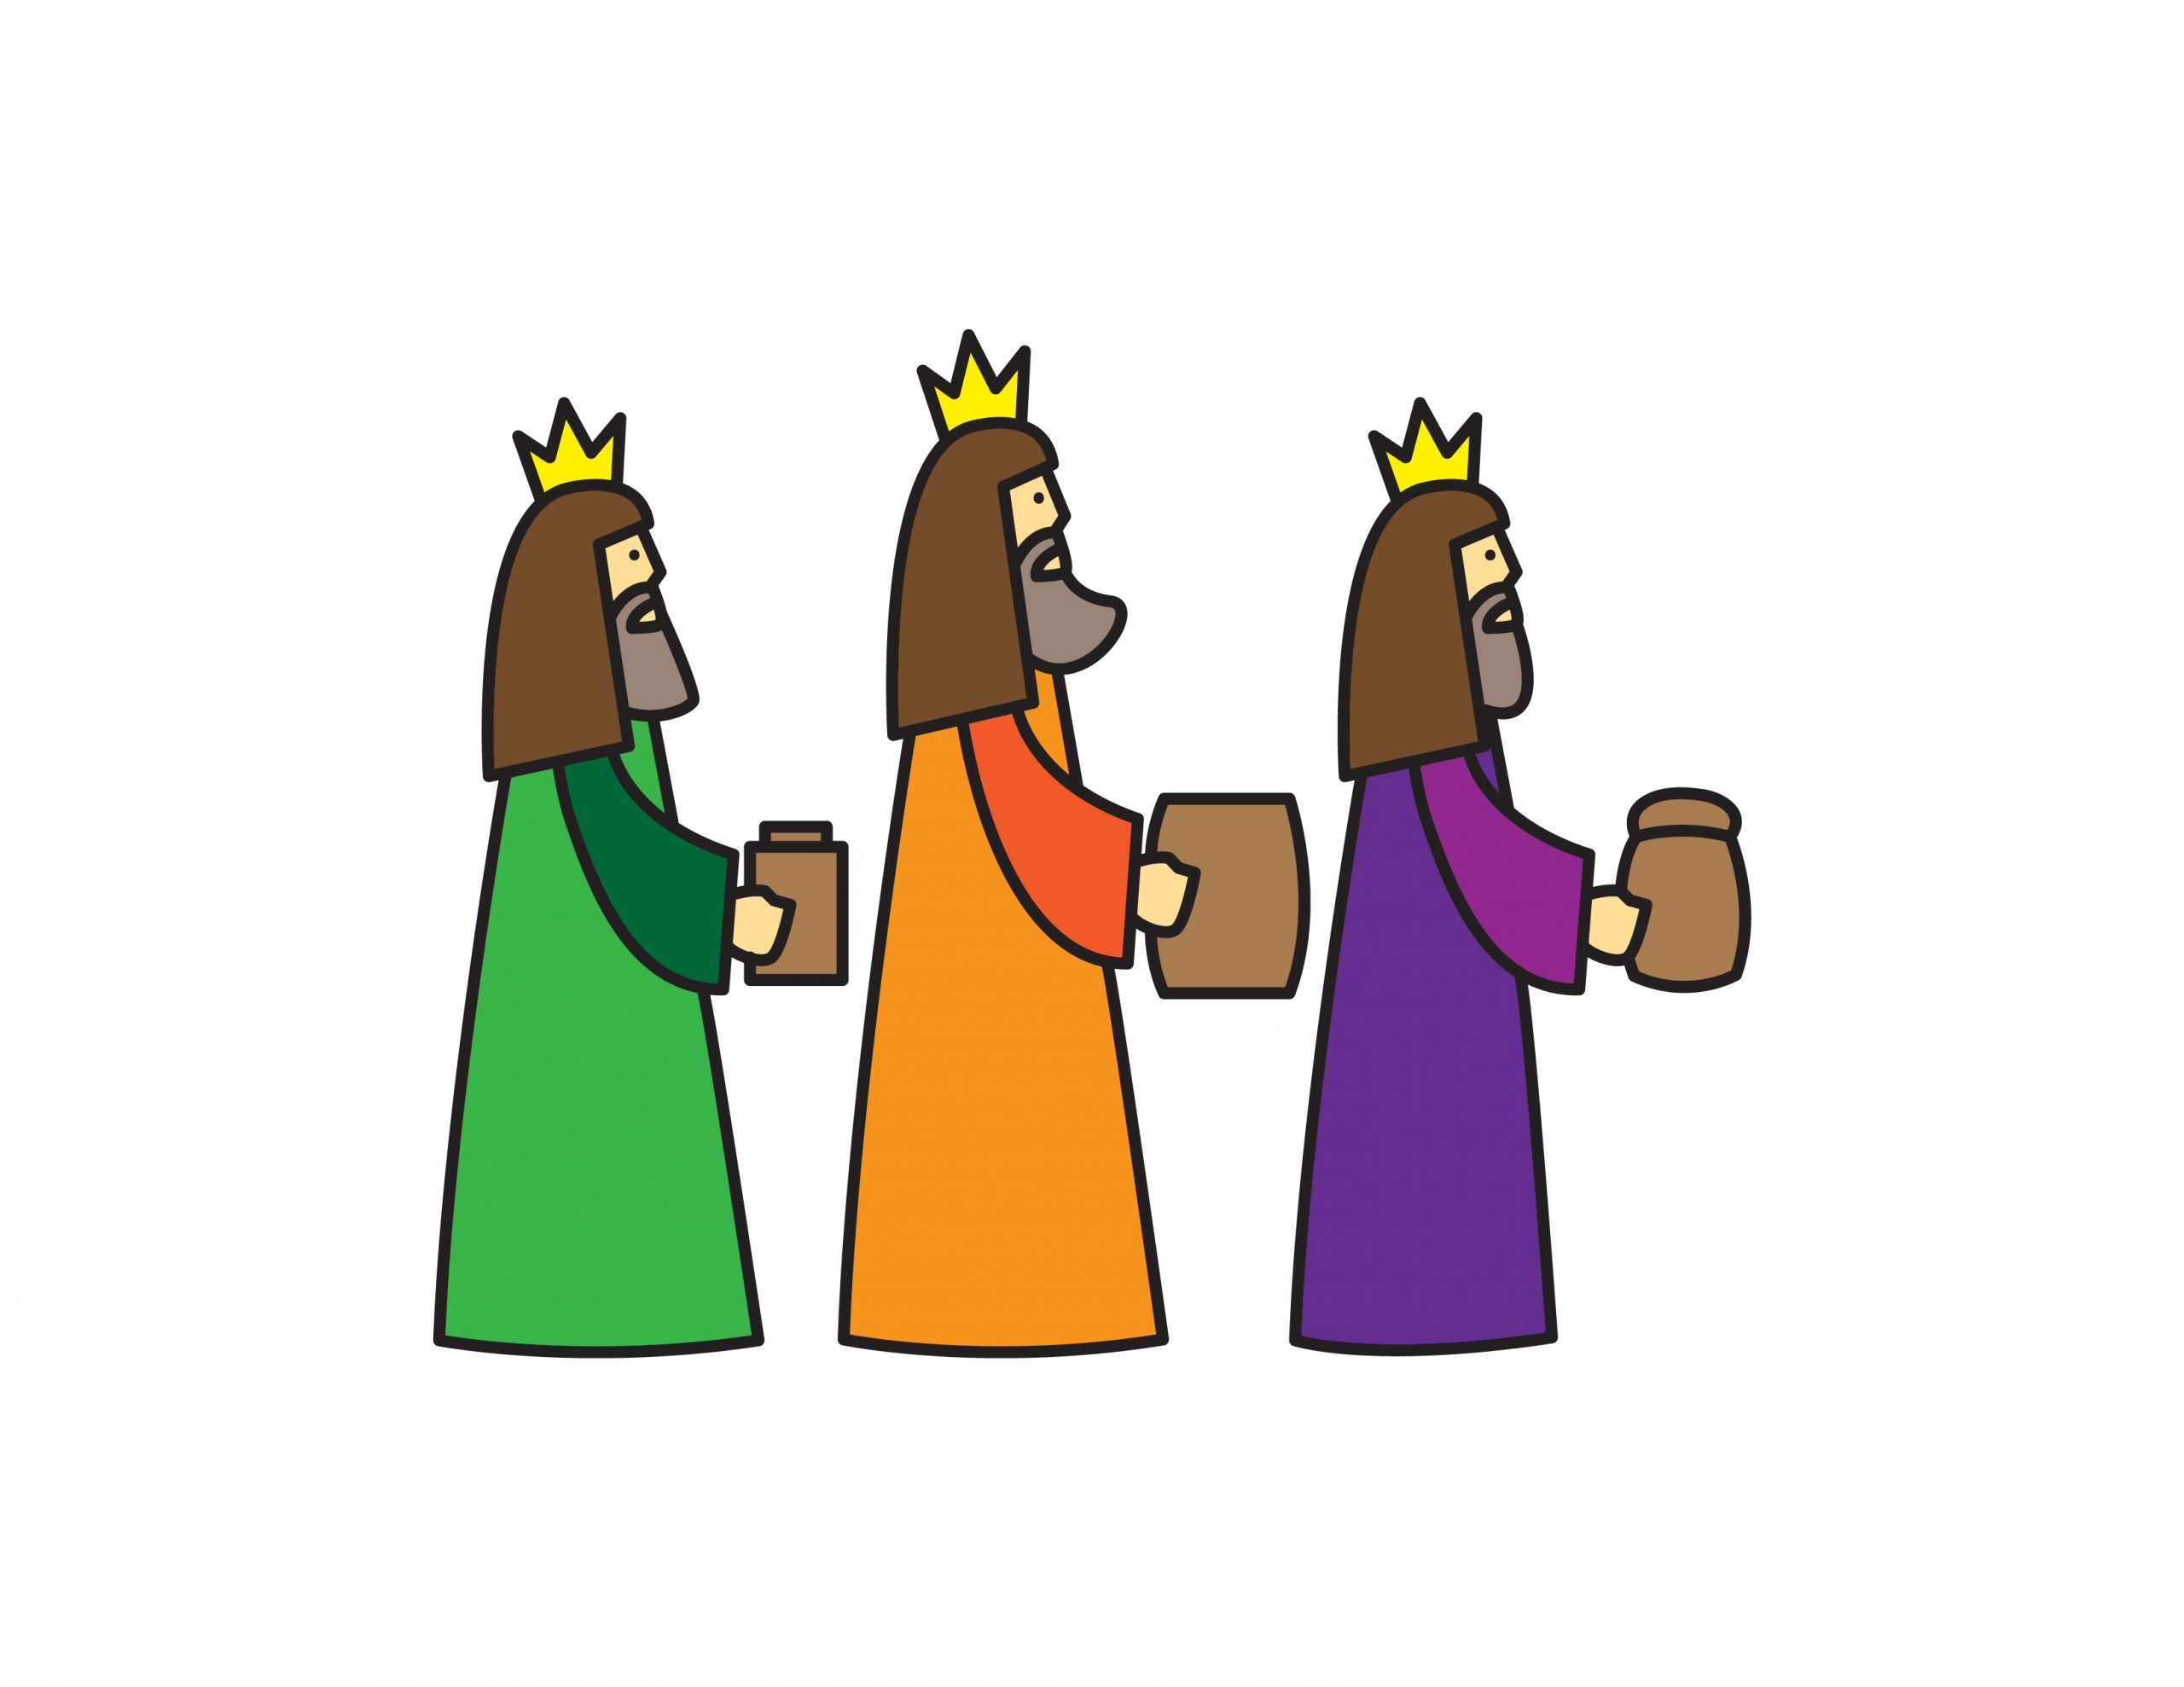 How To Draw The Three Wise Men (Easy Tutorial for Kids)